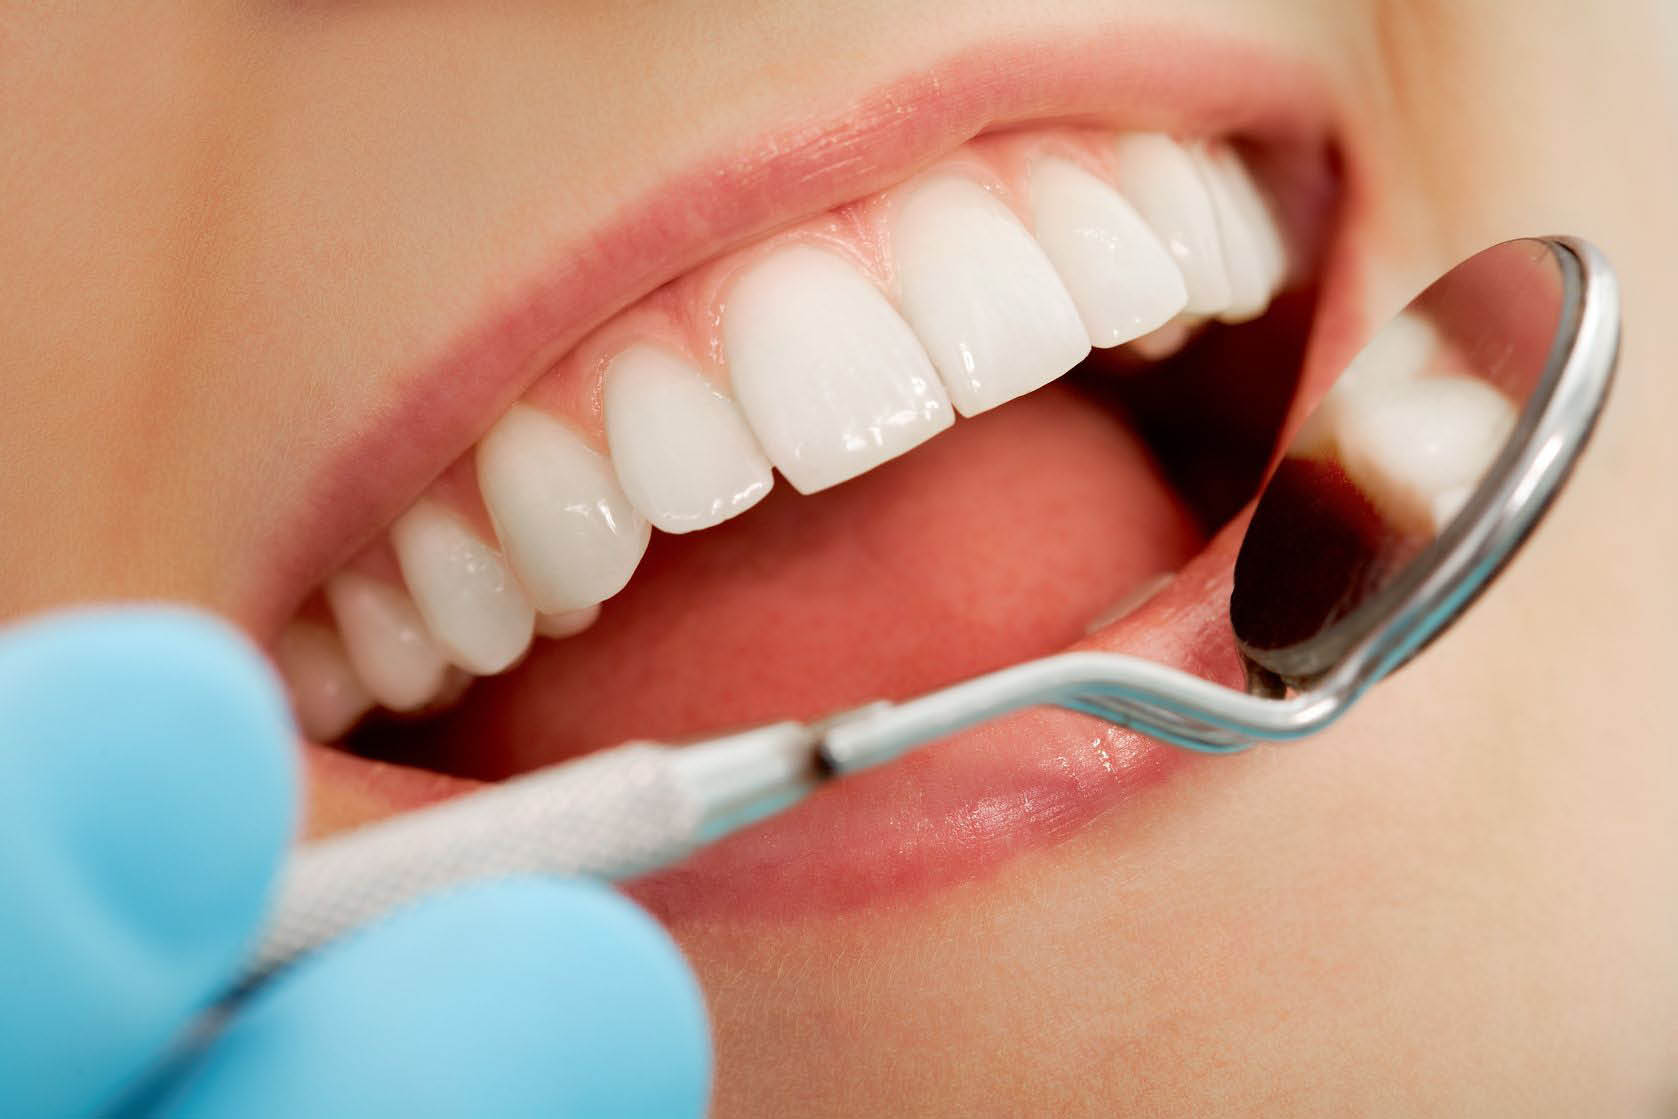 waverly lebard, family dentistry, teeth, root canal, fillings, cleaning, braces, dentist, partials, implants, dentures